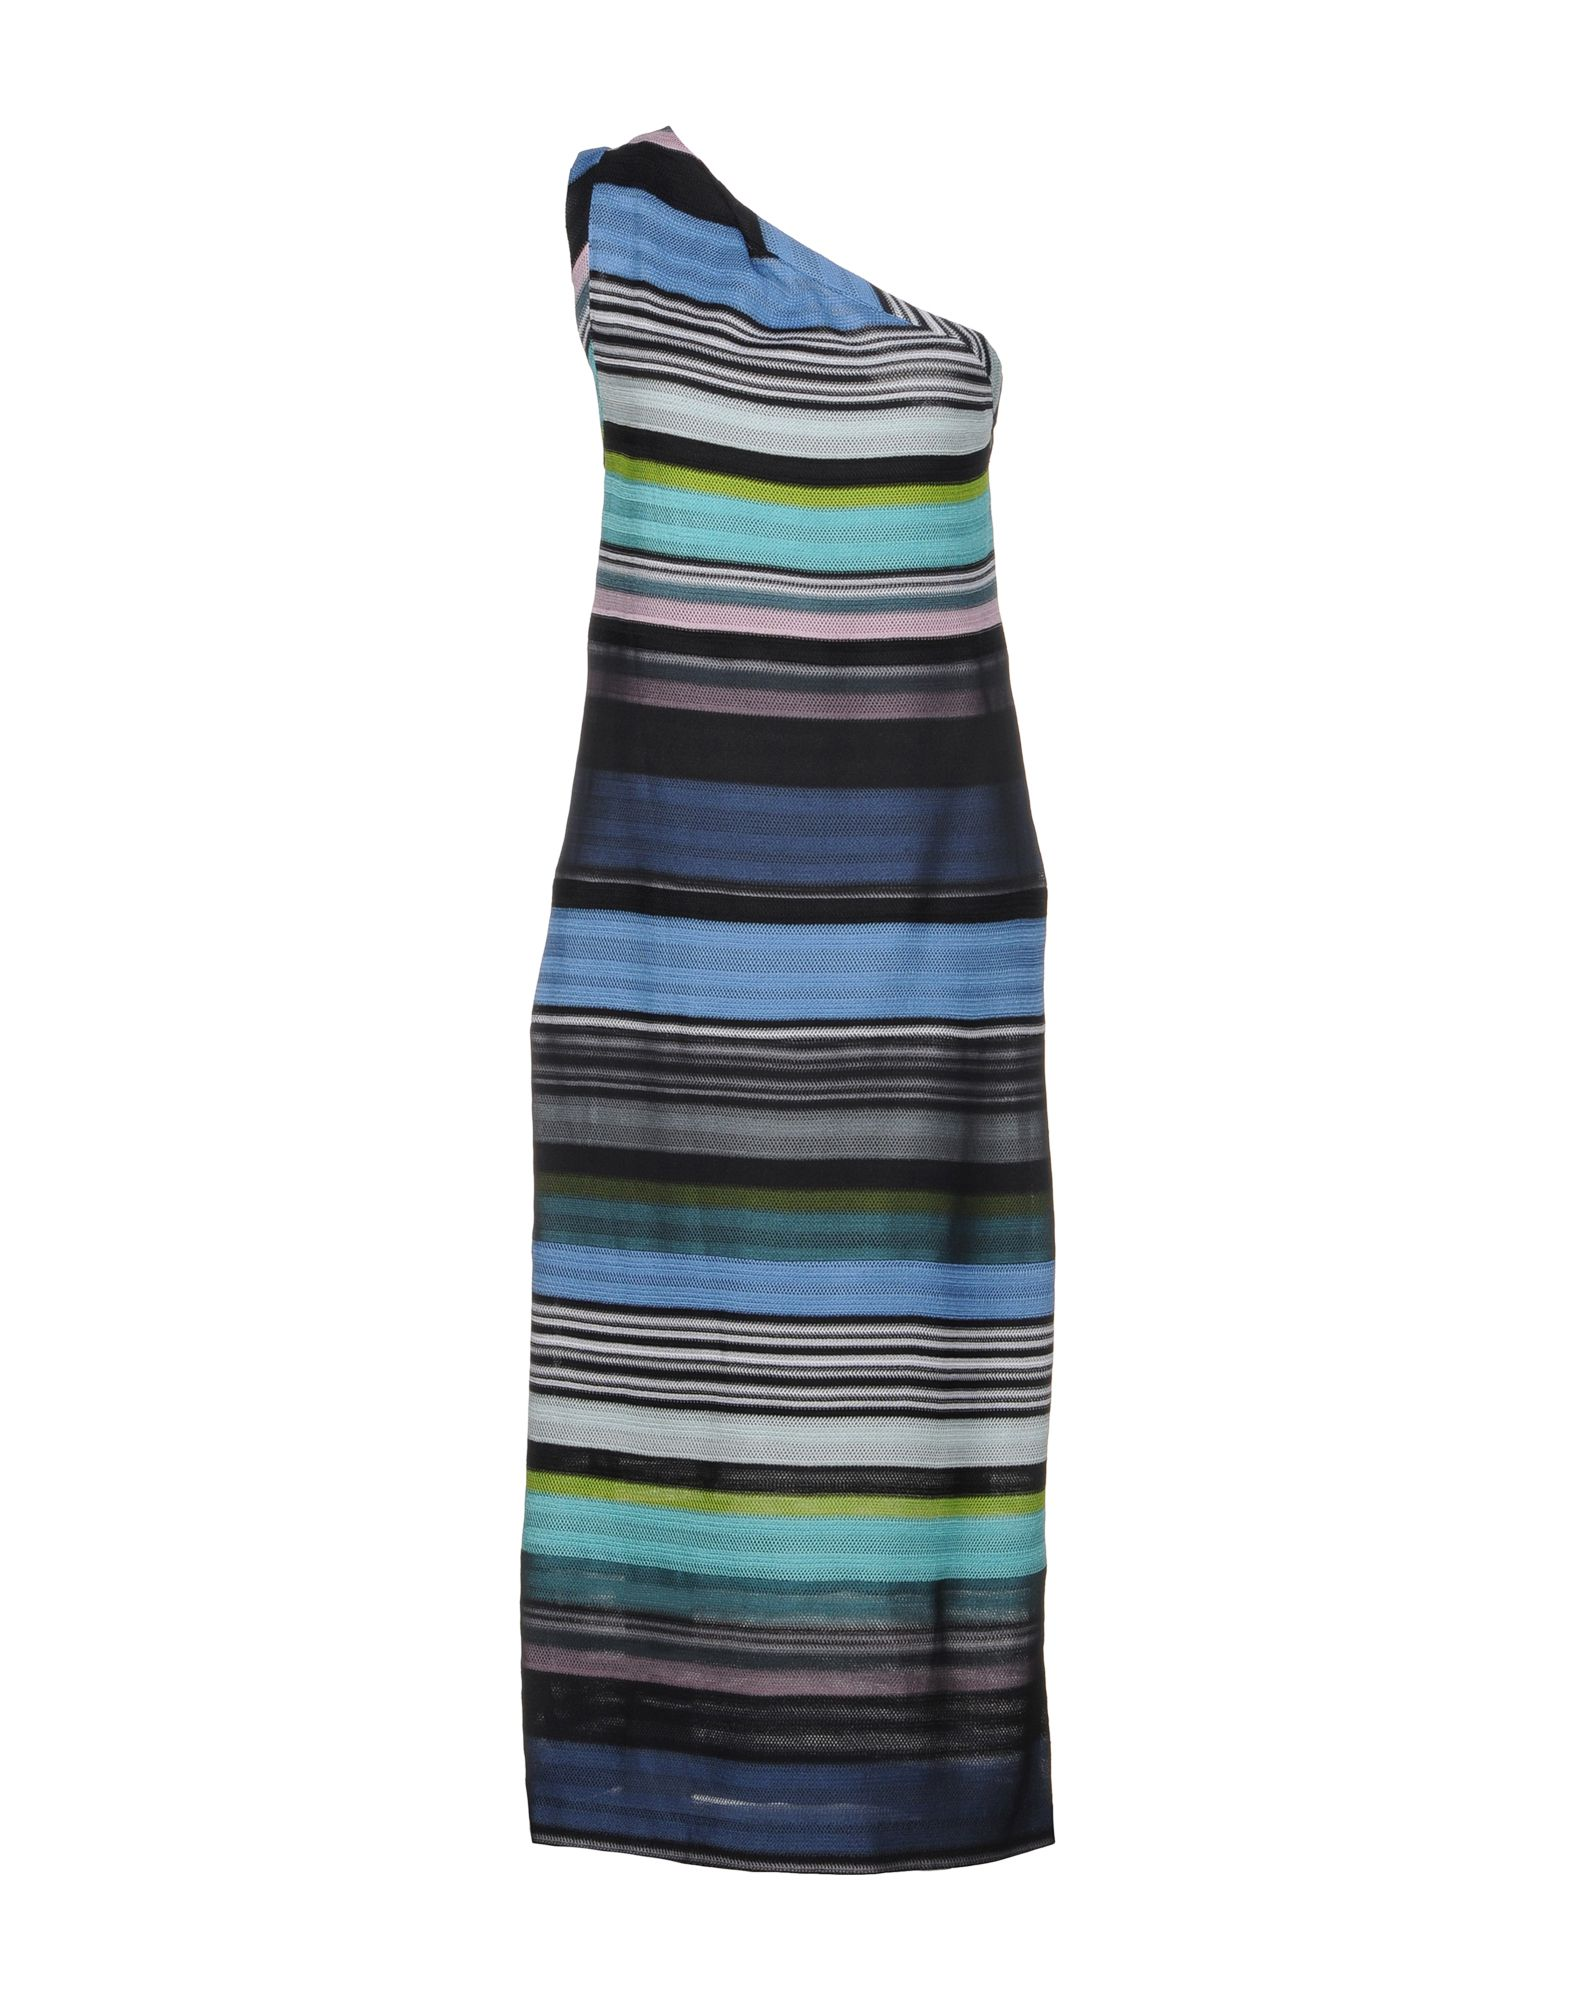 31578a719a Buy missoni clothing for women - Best women s missoni clothing shop ...